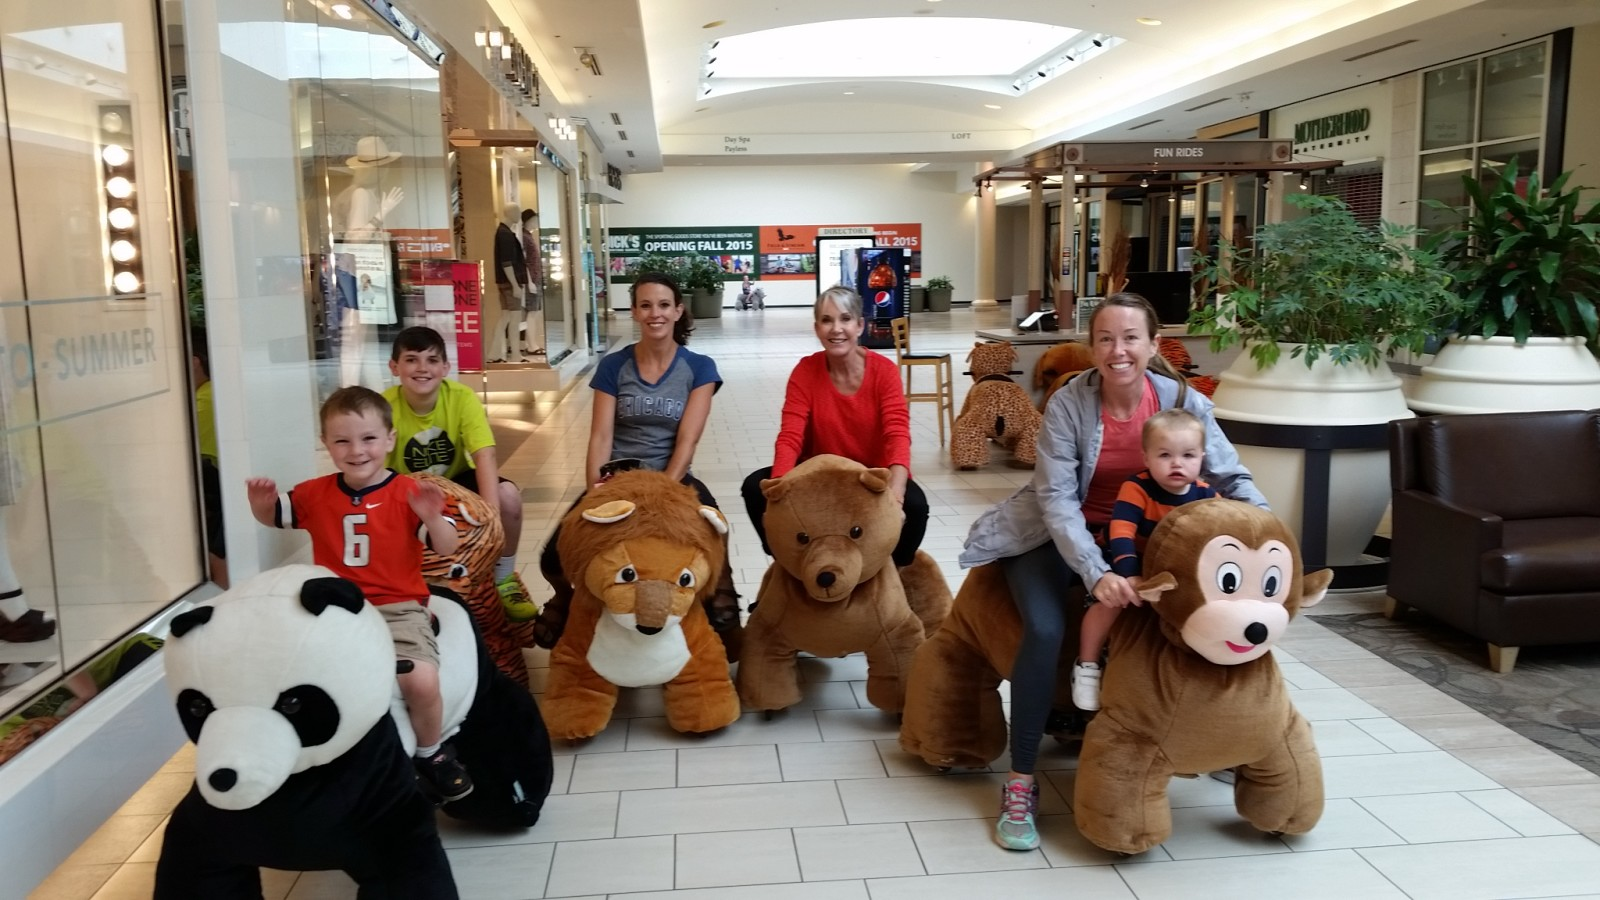 Good Rides For Kids In Malls In Minneapolis